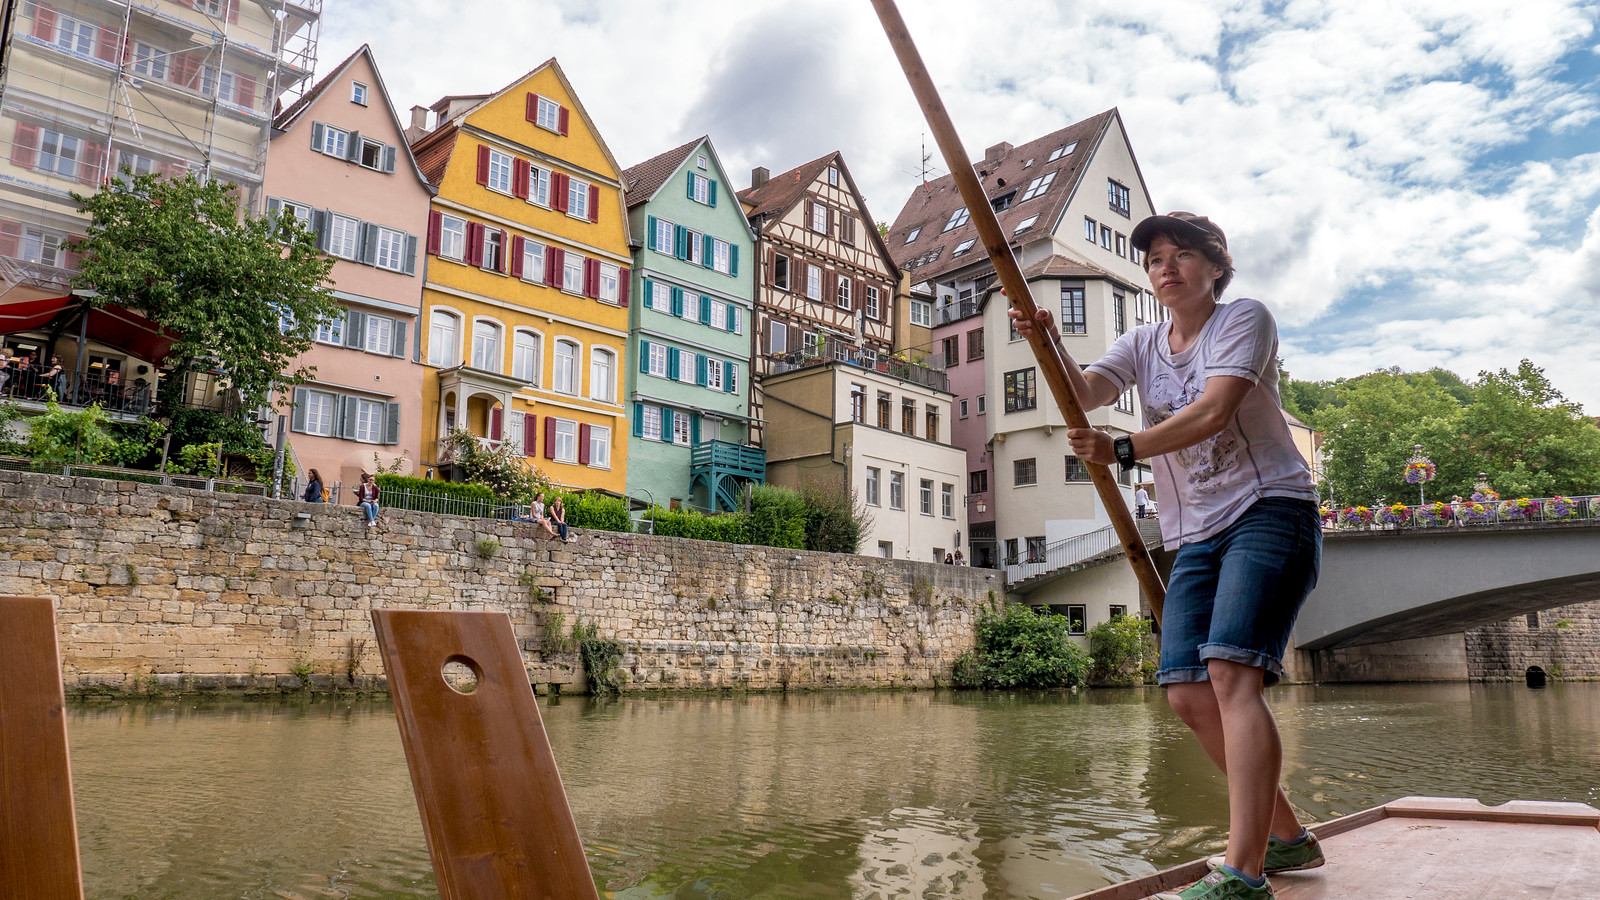 Punting in Tubingen, Germany. Things to do in Tubingen Germany.